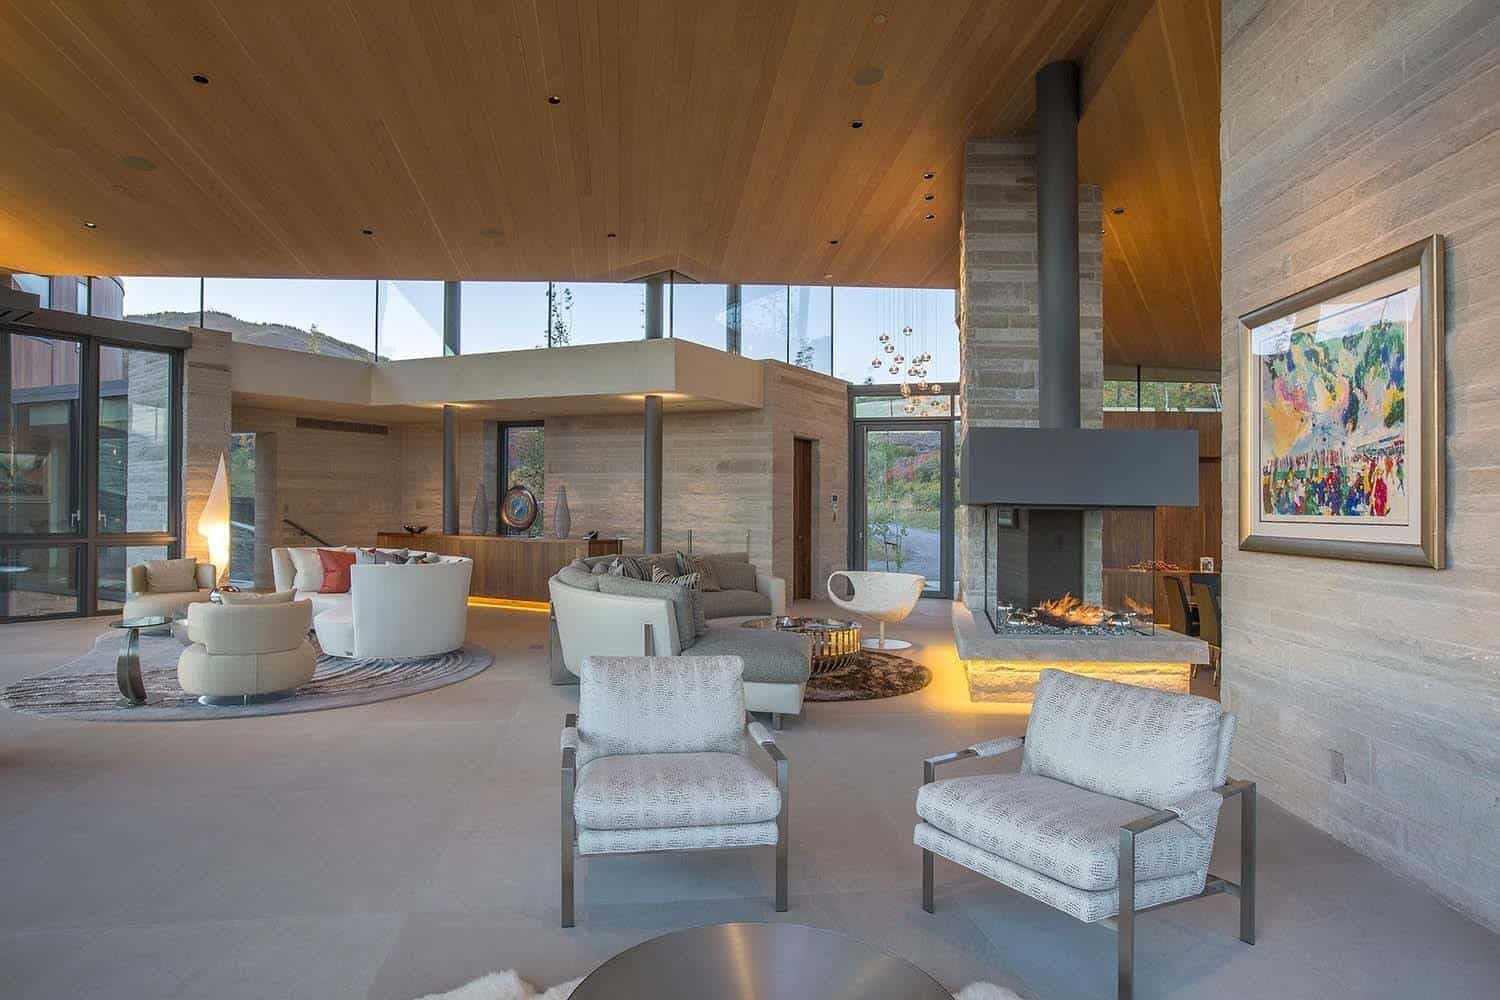 Modern-Residence-Colorado-Poss Architecture-11-1 Kindesign